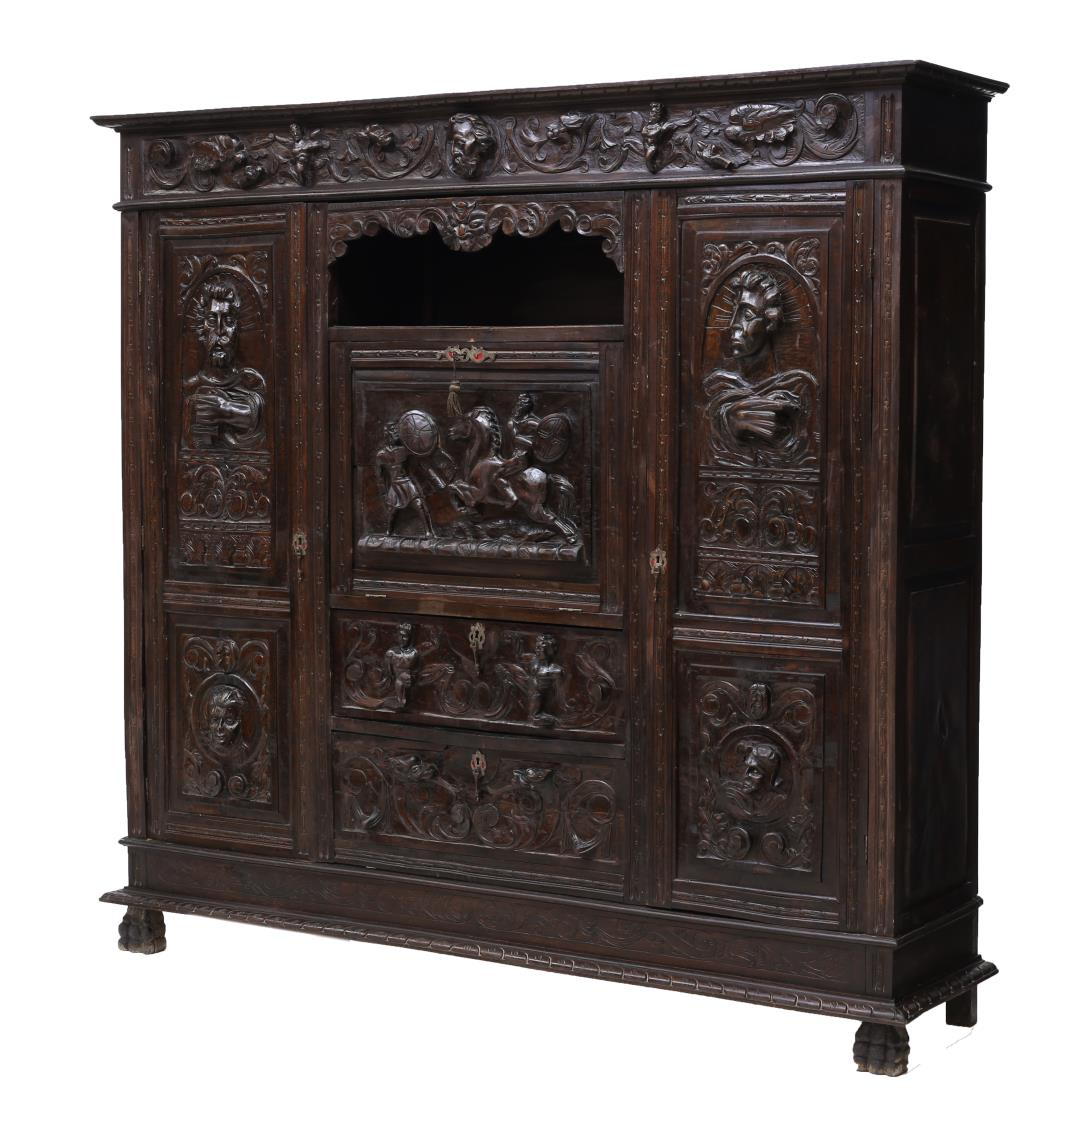 Spanish Heavily Carved Baroque Bookcase 19th C Day 2